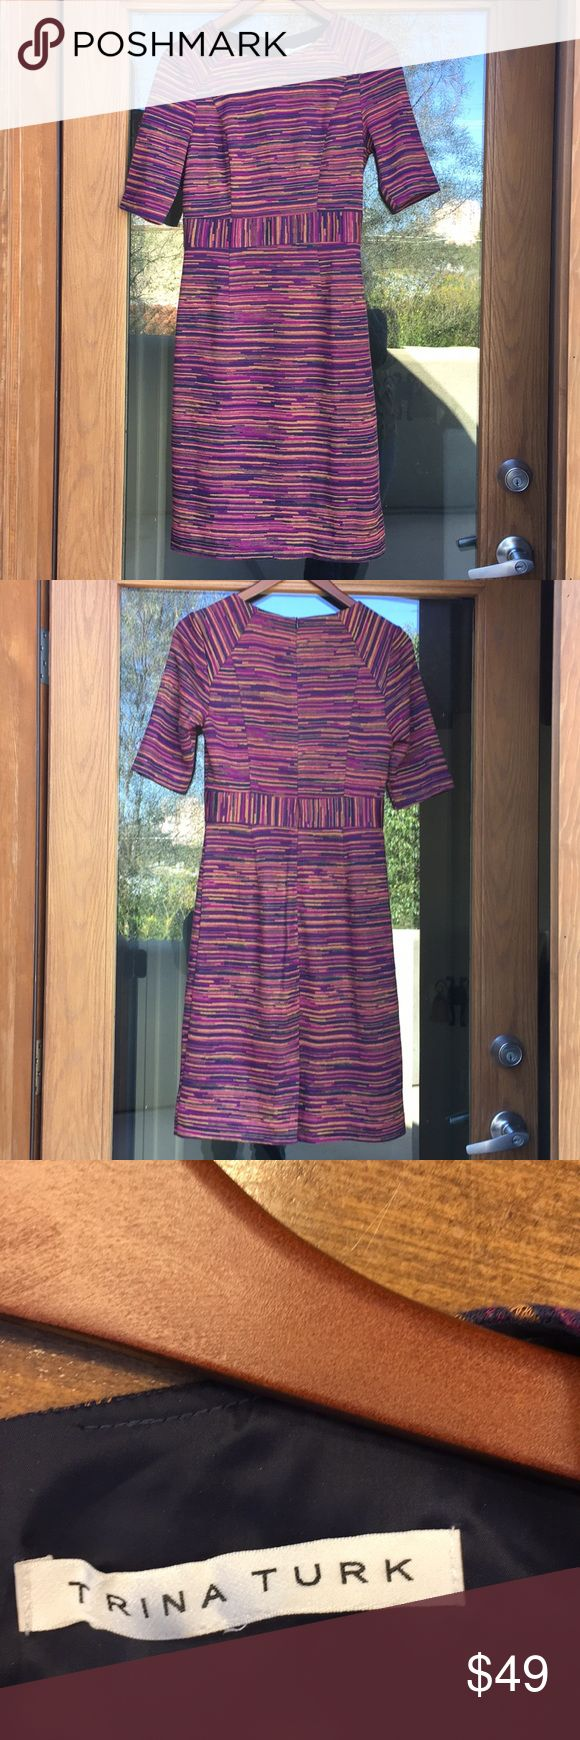 "Trina Turk dress, Size 6 Cut Trina Turk fitted dress, fits a size 6. Inside is lined. Good condition. Zips in back. Colors include purple, gold & navy. 36"" Long, 15"" across the chest. Make sure to check my closet as bundles save on shipping for multiple items. Trina Turk Dresses Midi"